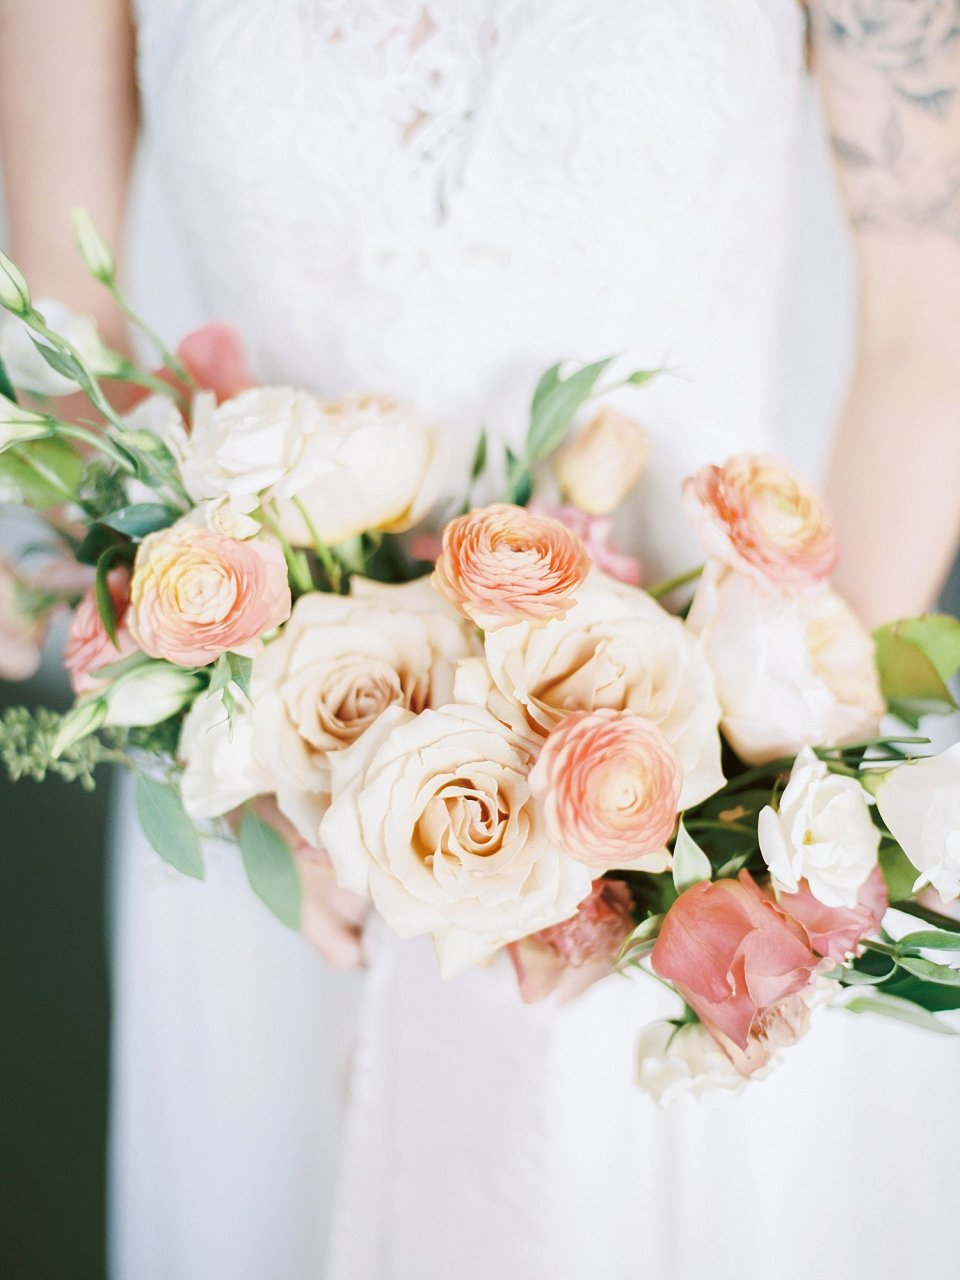 Elegant and Organic Wedding | Roots Floral Design